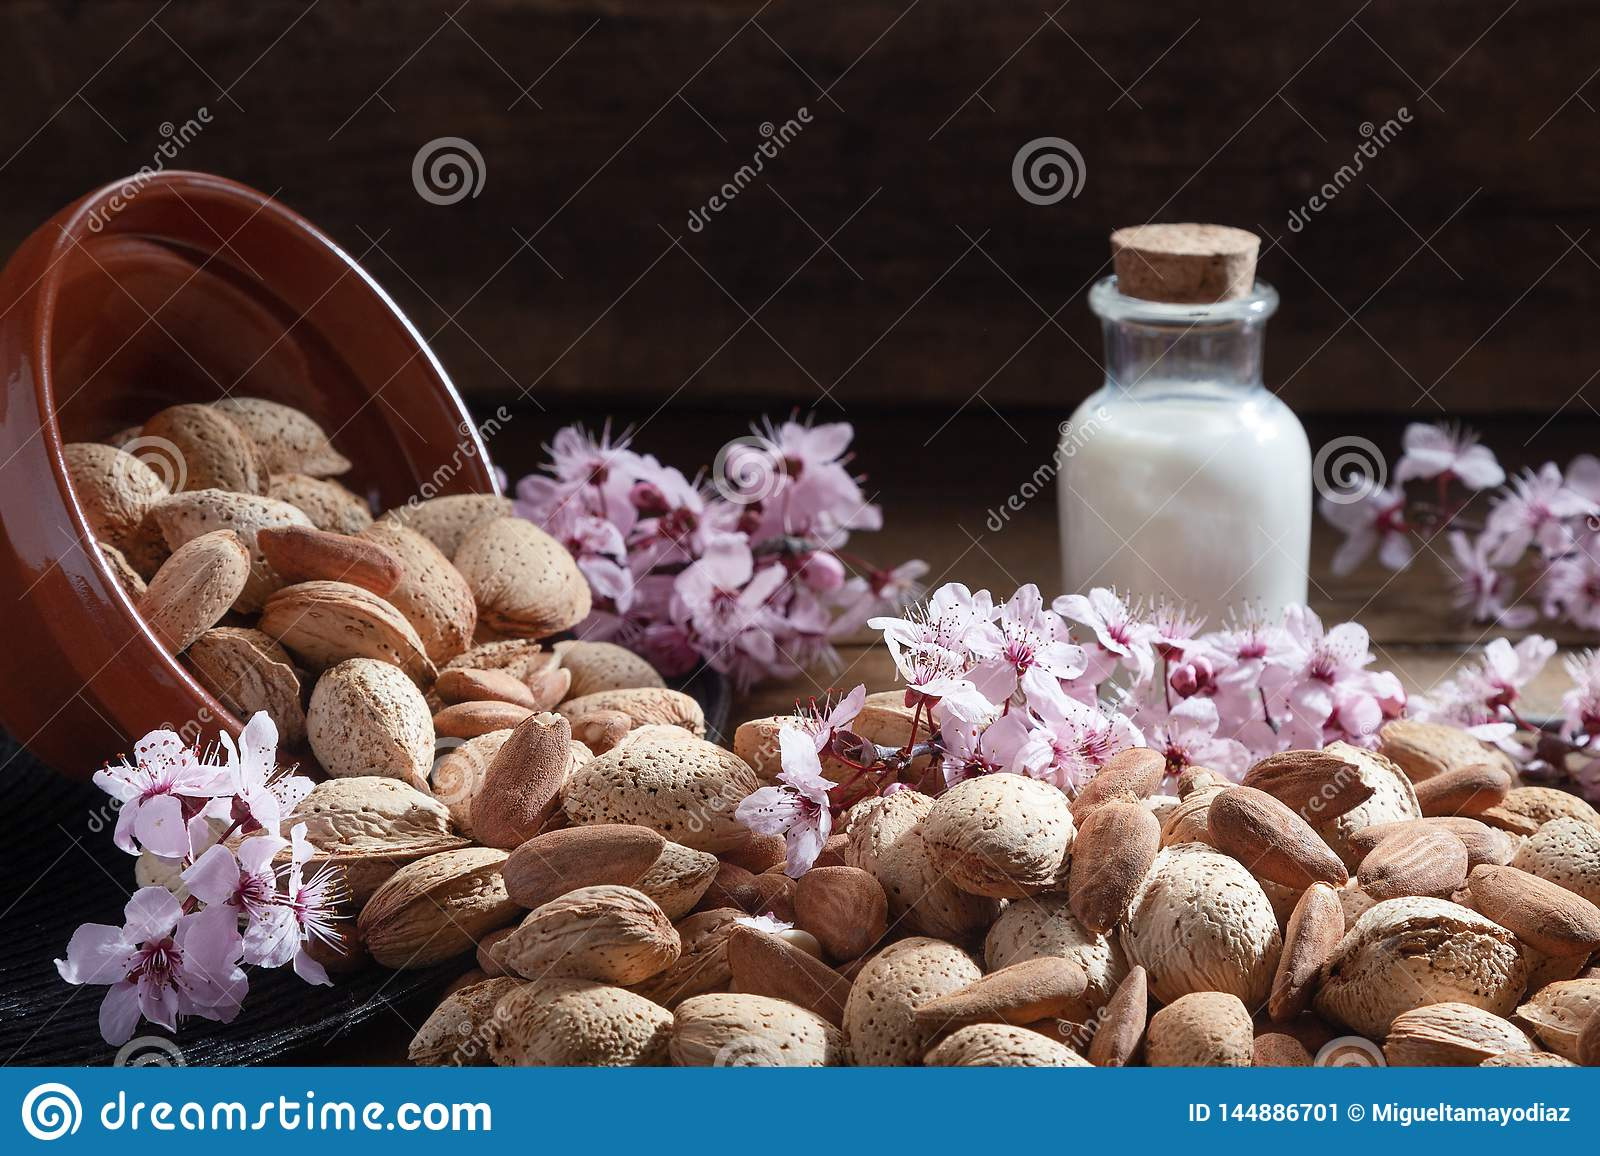 Almonds, almond flowers and almond milk